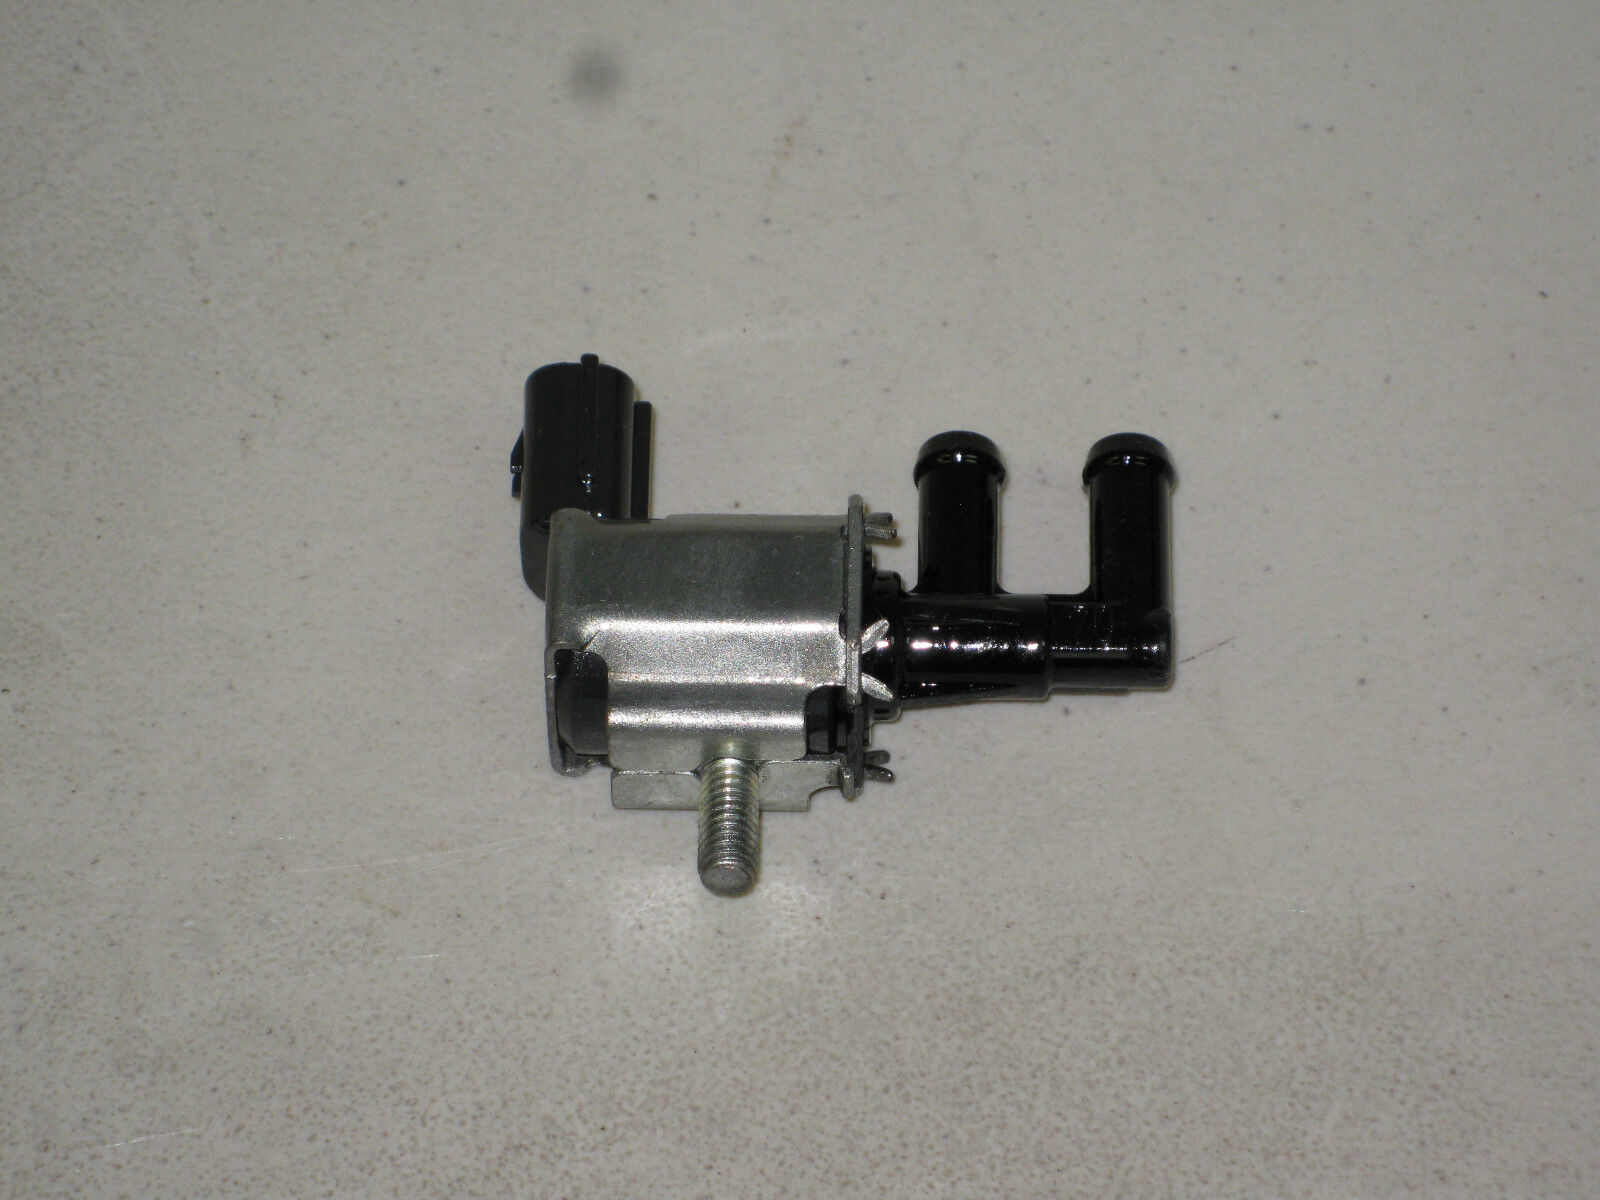 Used Subaru Egr Valves And Parts For Sale Page 10 1998 Outback Valve 25l Duty Purge Solenoid Sensor K5t48478 Oem 16102aa400 16102aa490